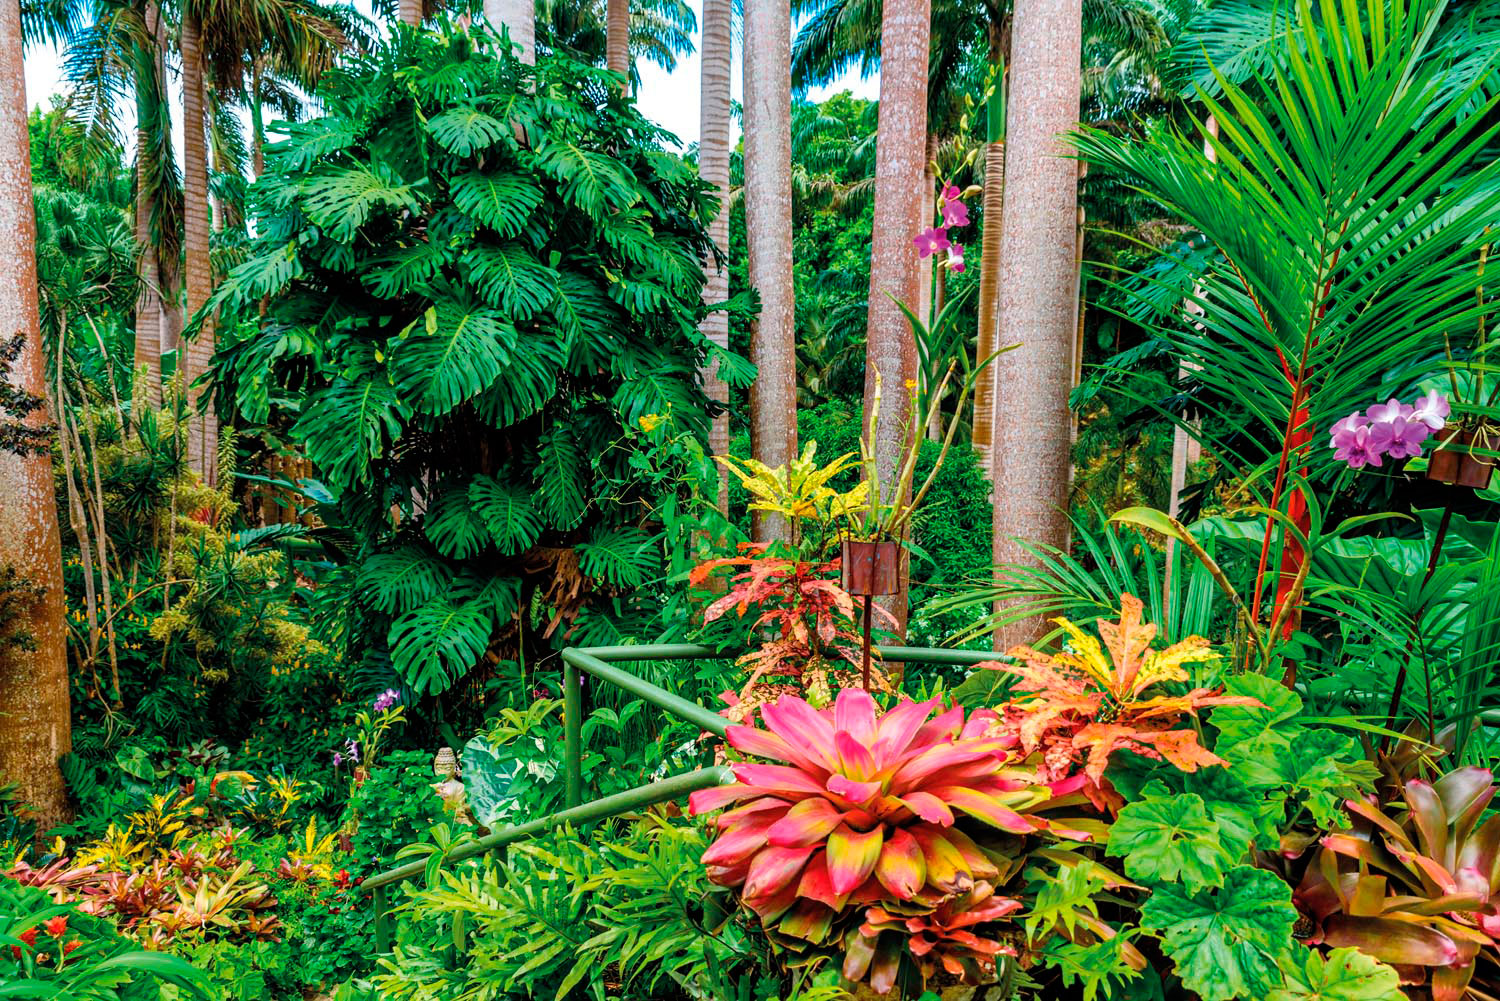 A profusion of tropical flora at Hunte's Garden. Photo by Simon Dannhauer/Shutterstock.com